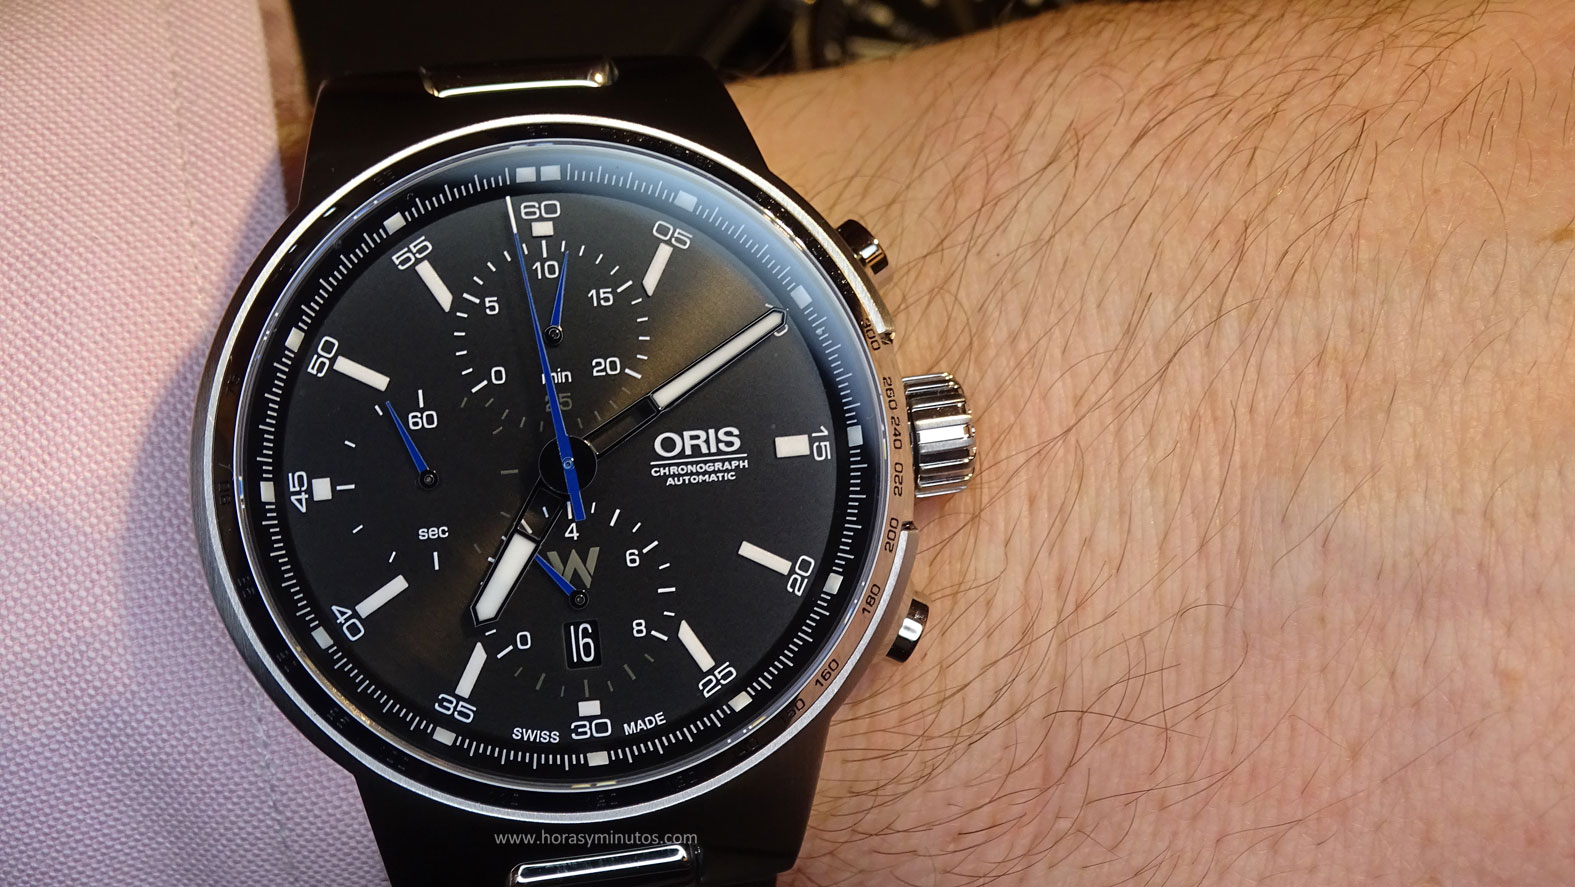 Oris Williams Chronograph en la muñeca